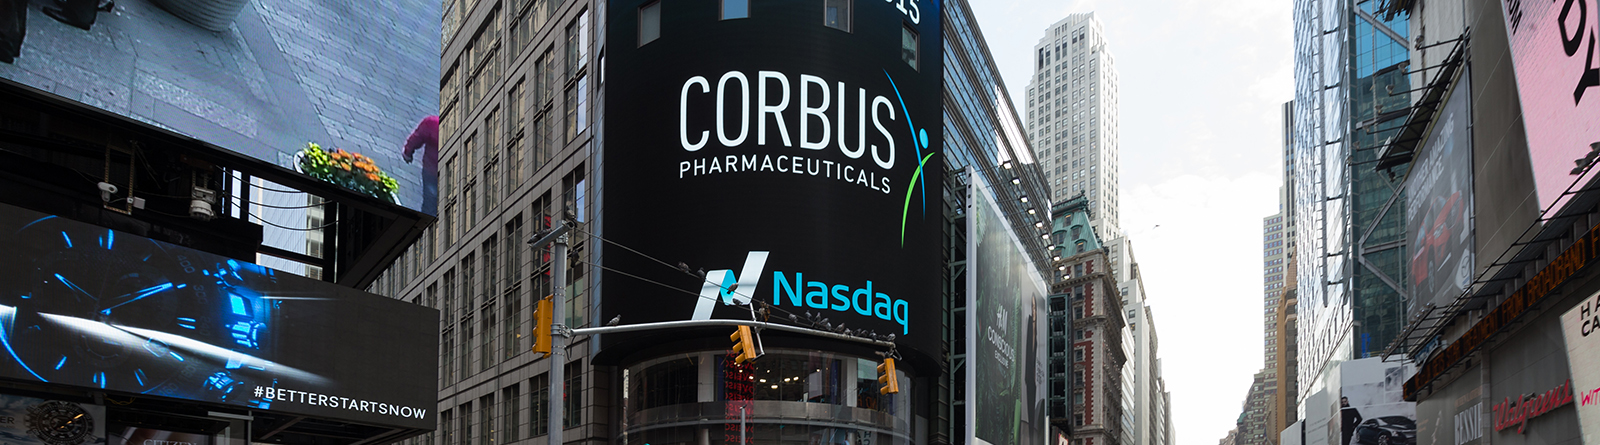 Corbus Pharmaceuticals Reports 2016 Second Quarter Financial Results and Provides Business Update Banner